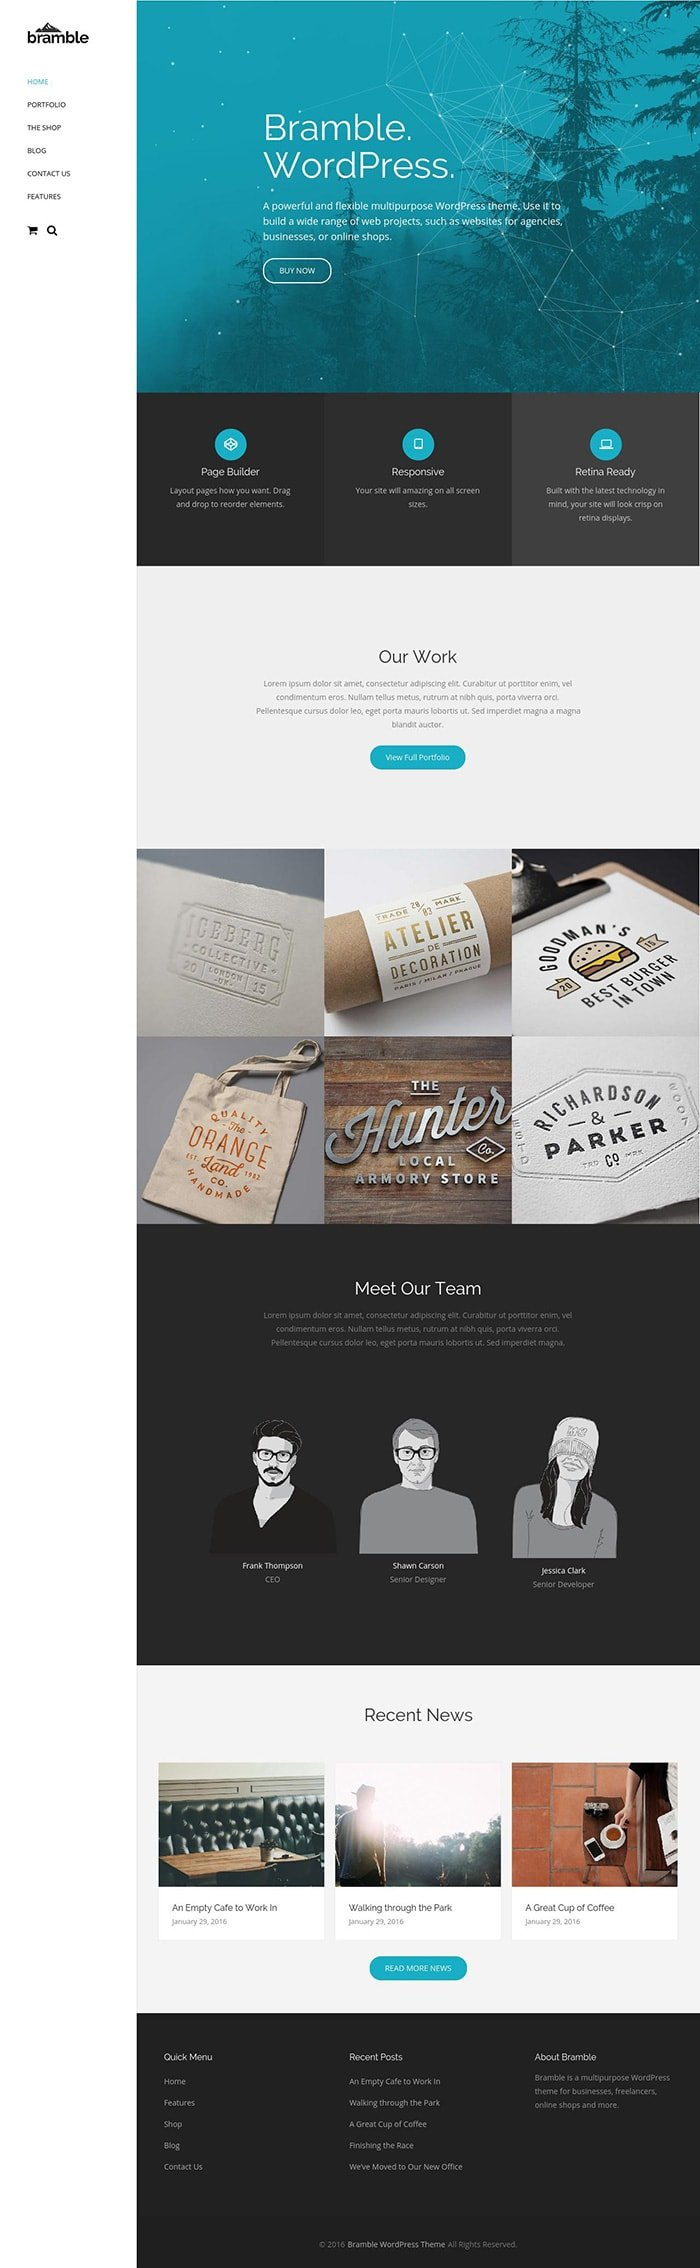 Bramble WordPress Theme Themetrust